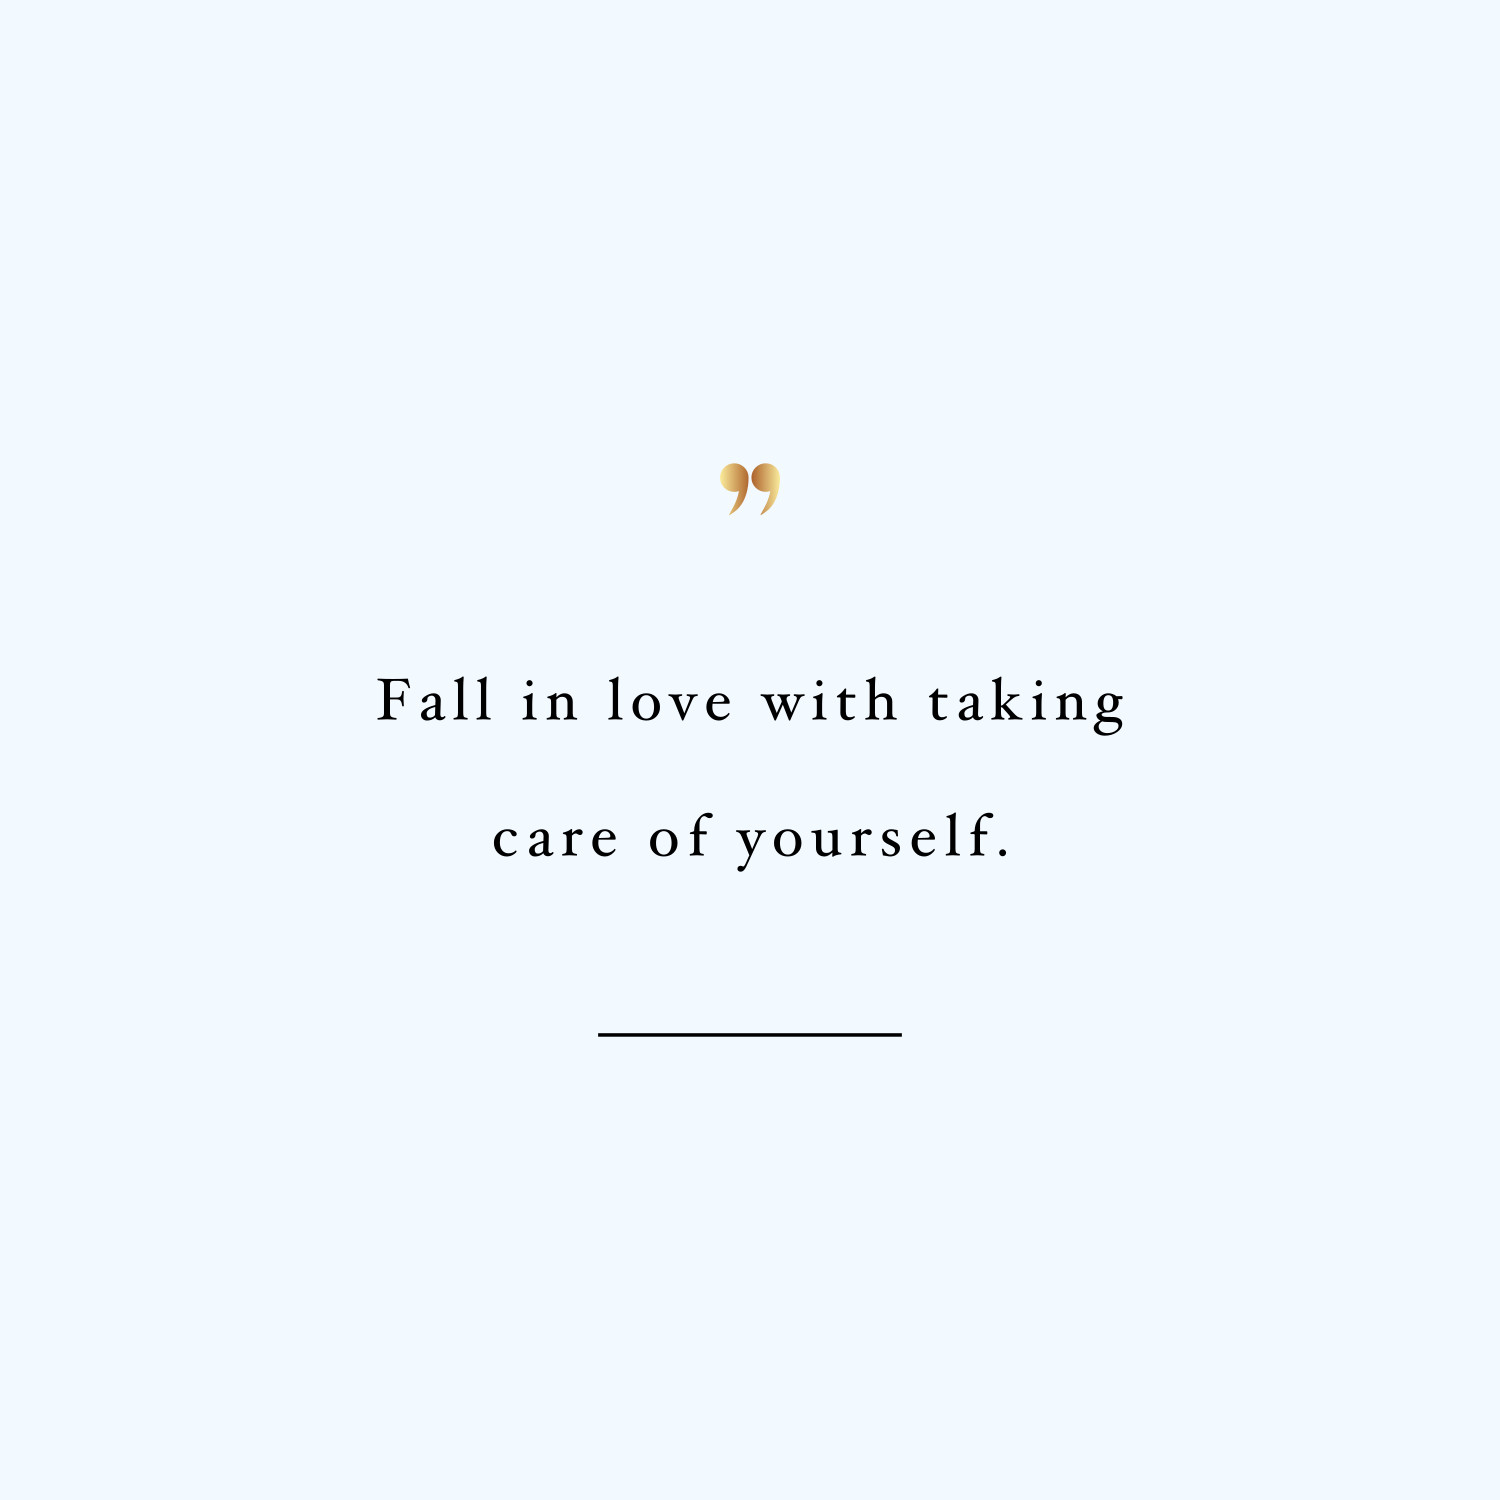 Fall in love with yourself! Browse our collection of inspirational fitness and weight loss quotes and get instant exercise and healthy eating motivation. Transform positive thoughts into positive actions and get fit, healthy and happy! https://www.spotebi.com/workout-motivation/fall-in-love-with-yourself/